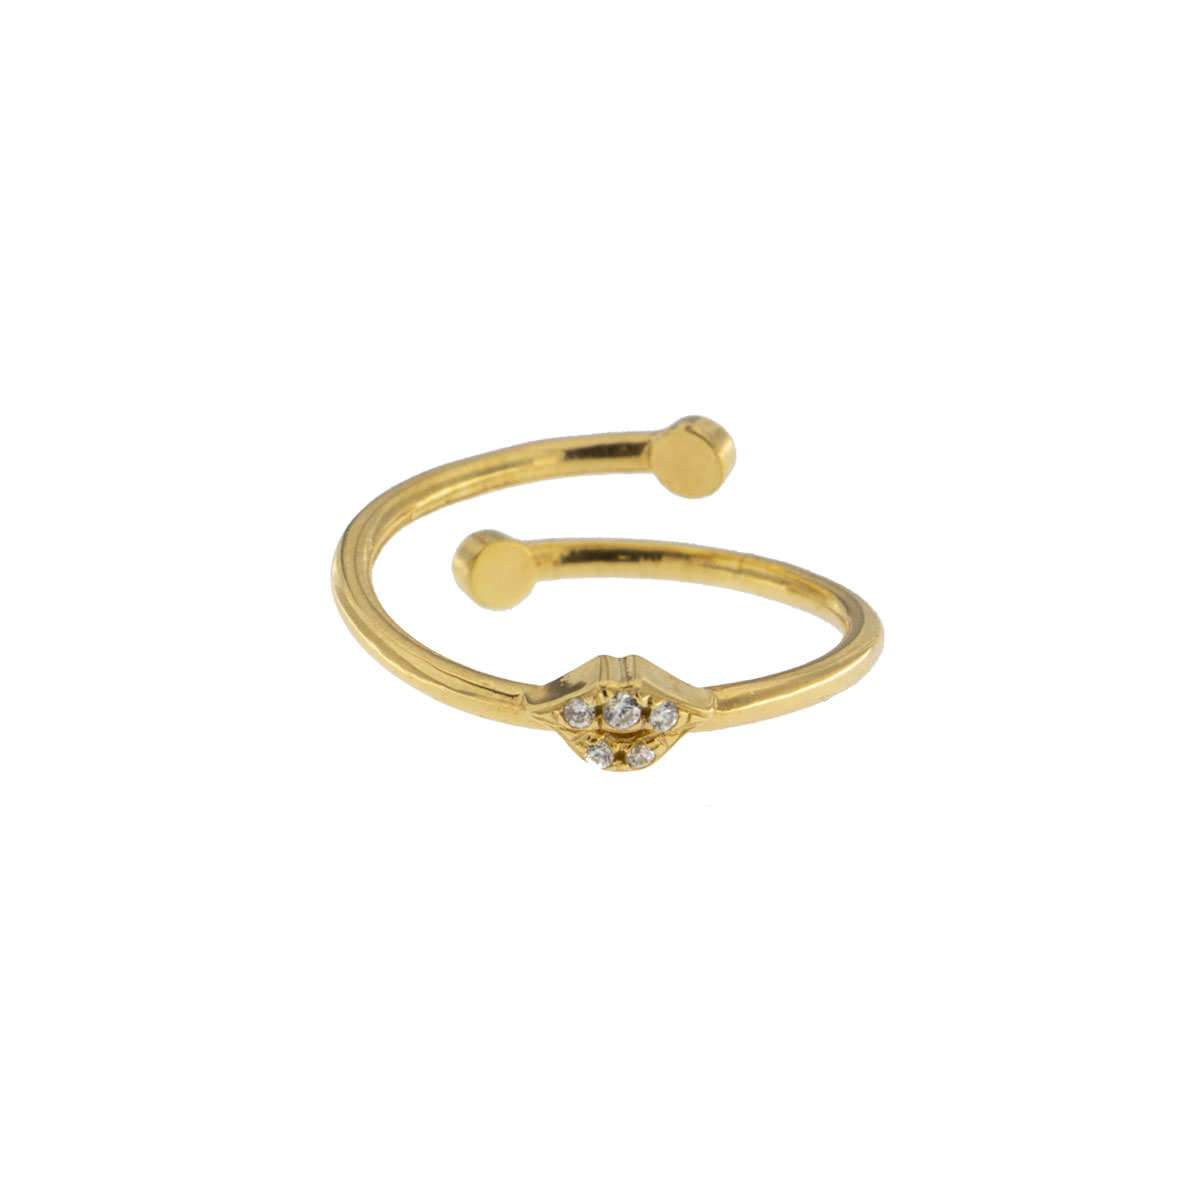 Rings - Zirconia Mouth Ring - 2 | Rue des Mille